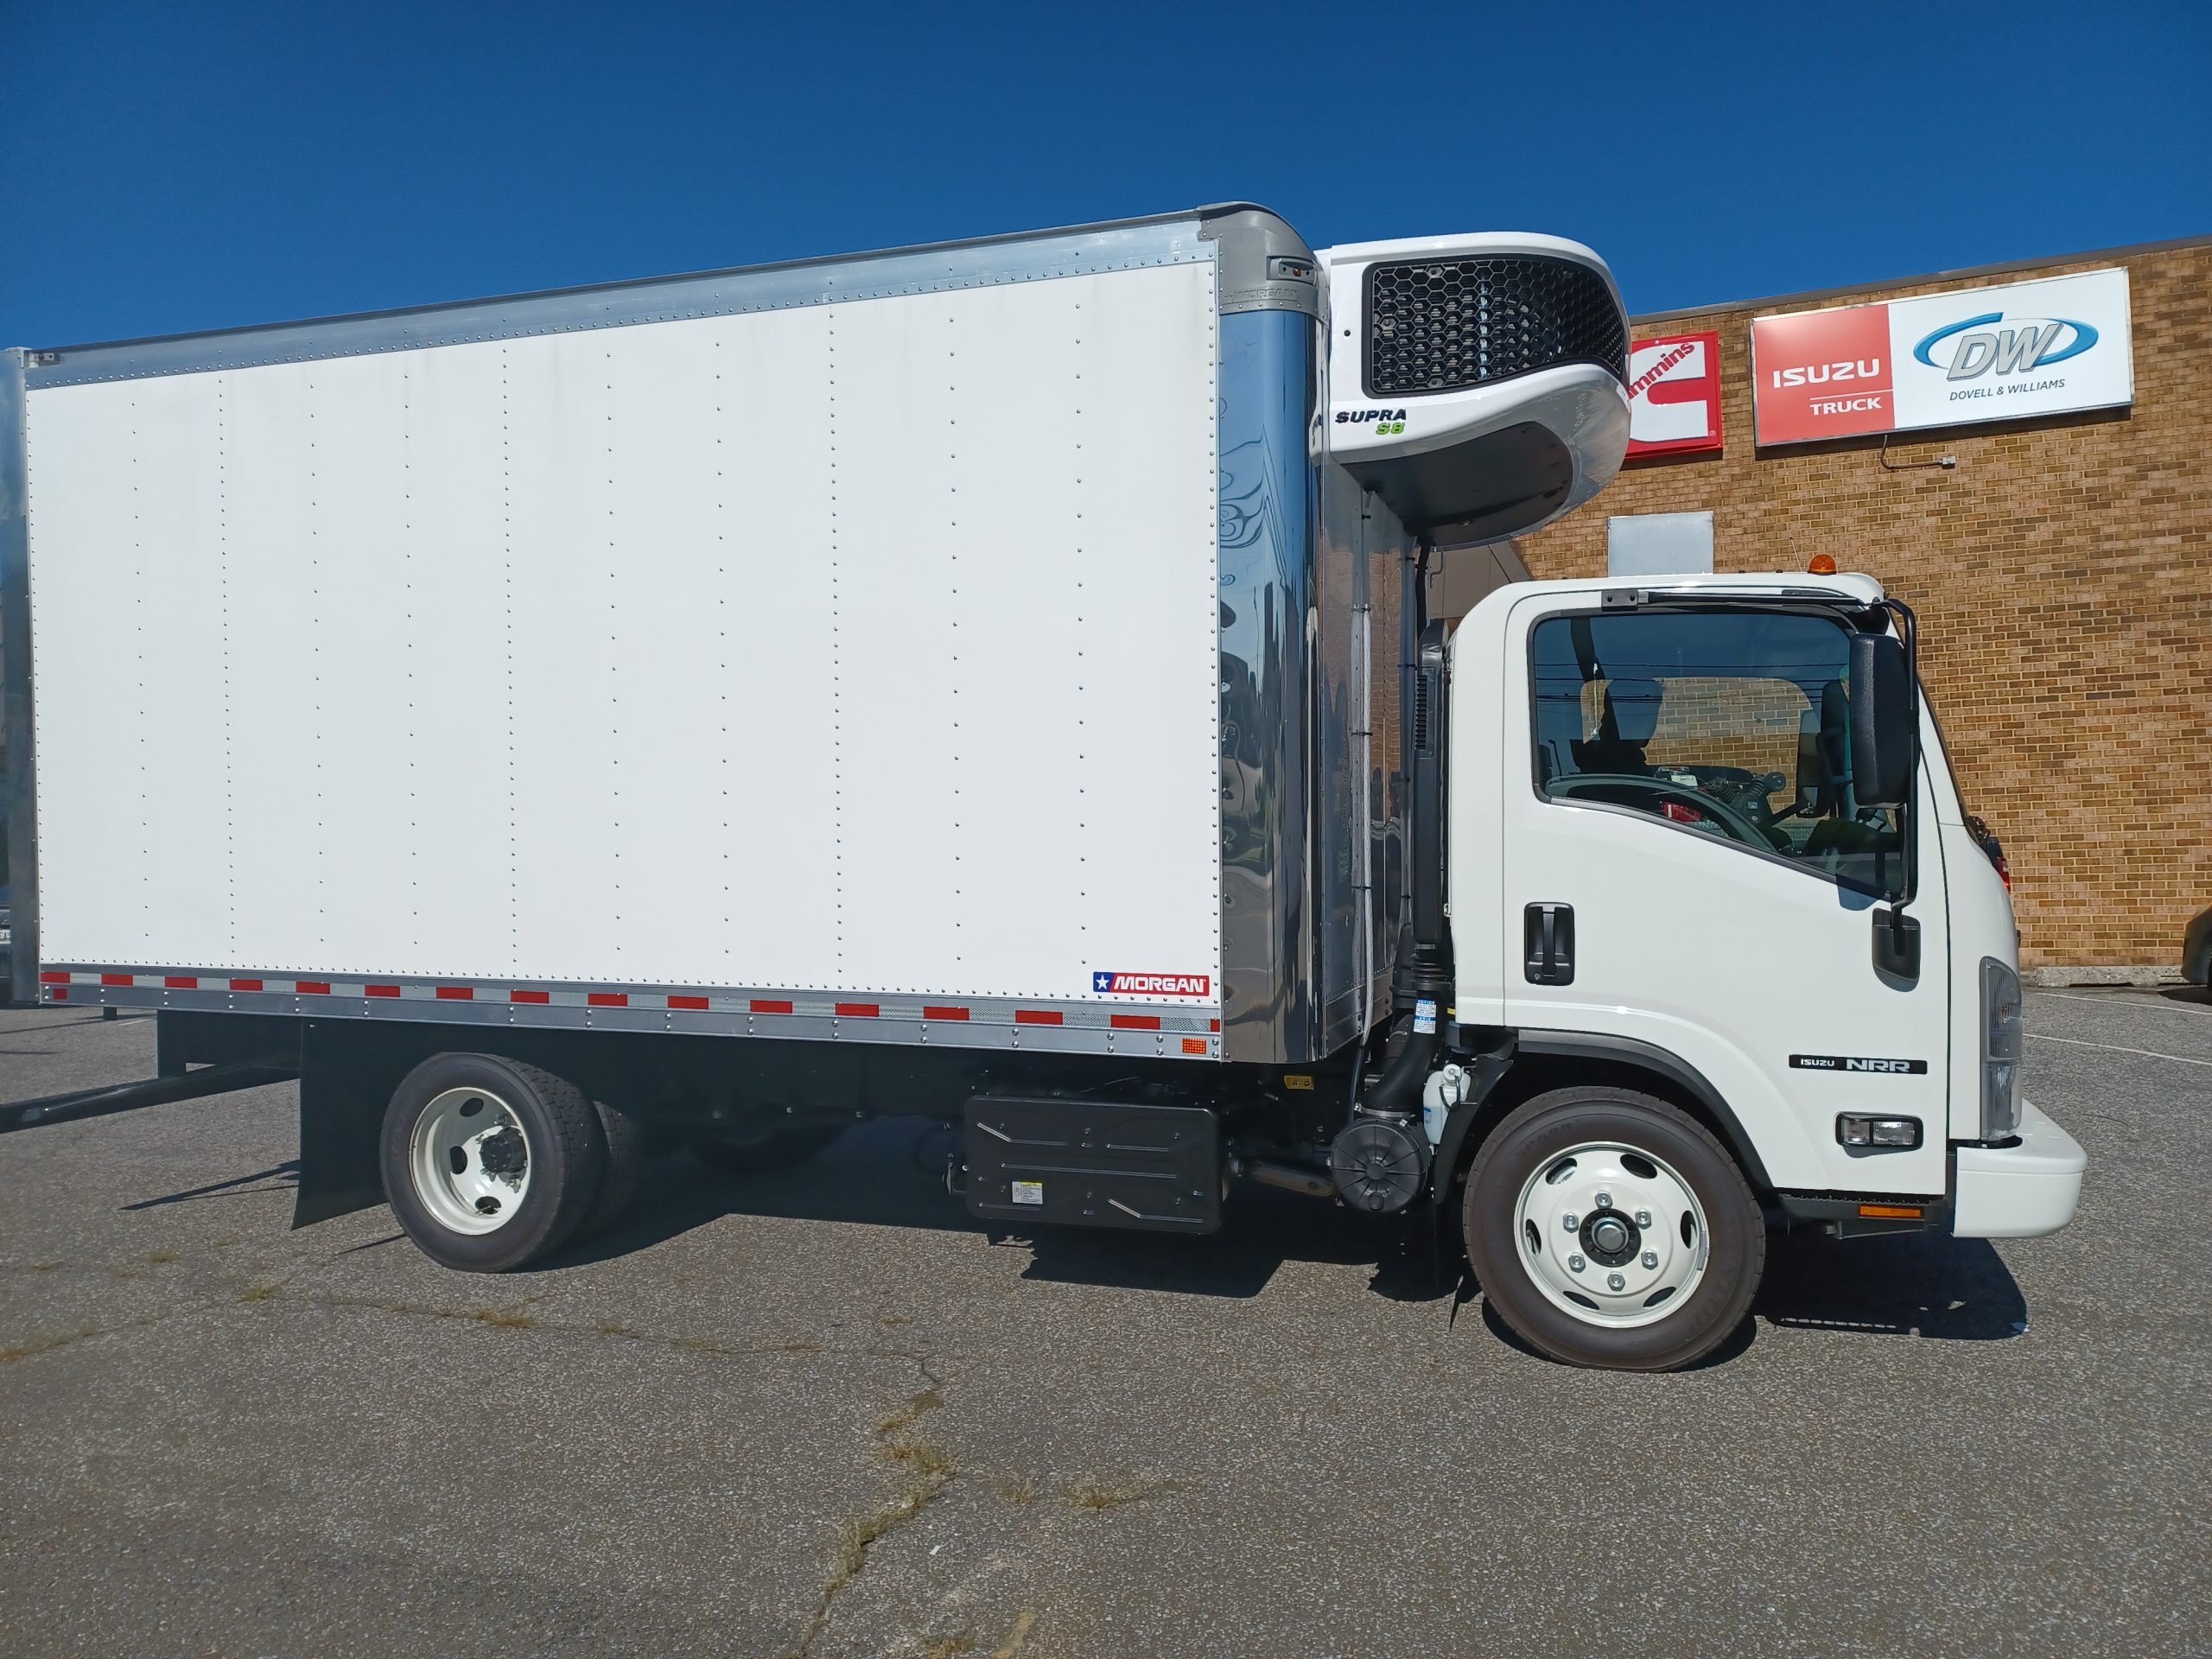 2022 NRR Refrigerated Truck Diesel 3 year Unlimited Mile Warranty 20210903_094349-scaled